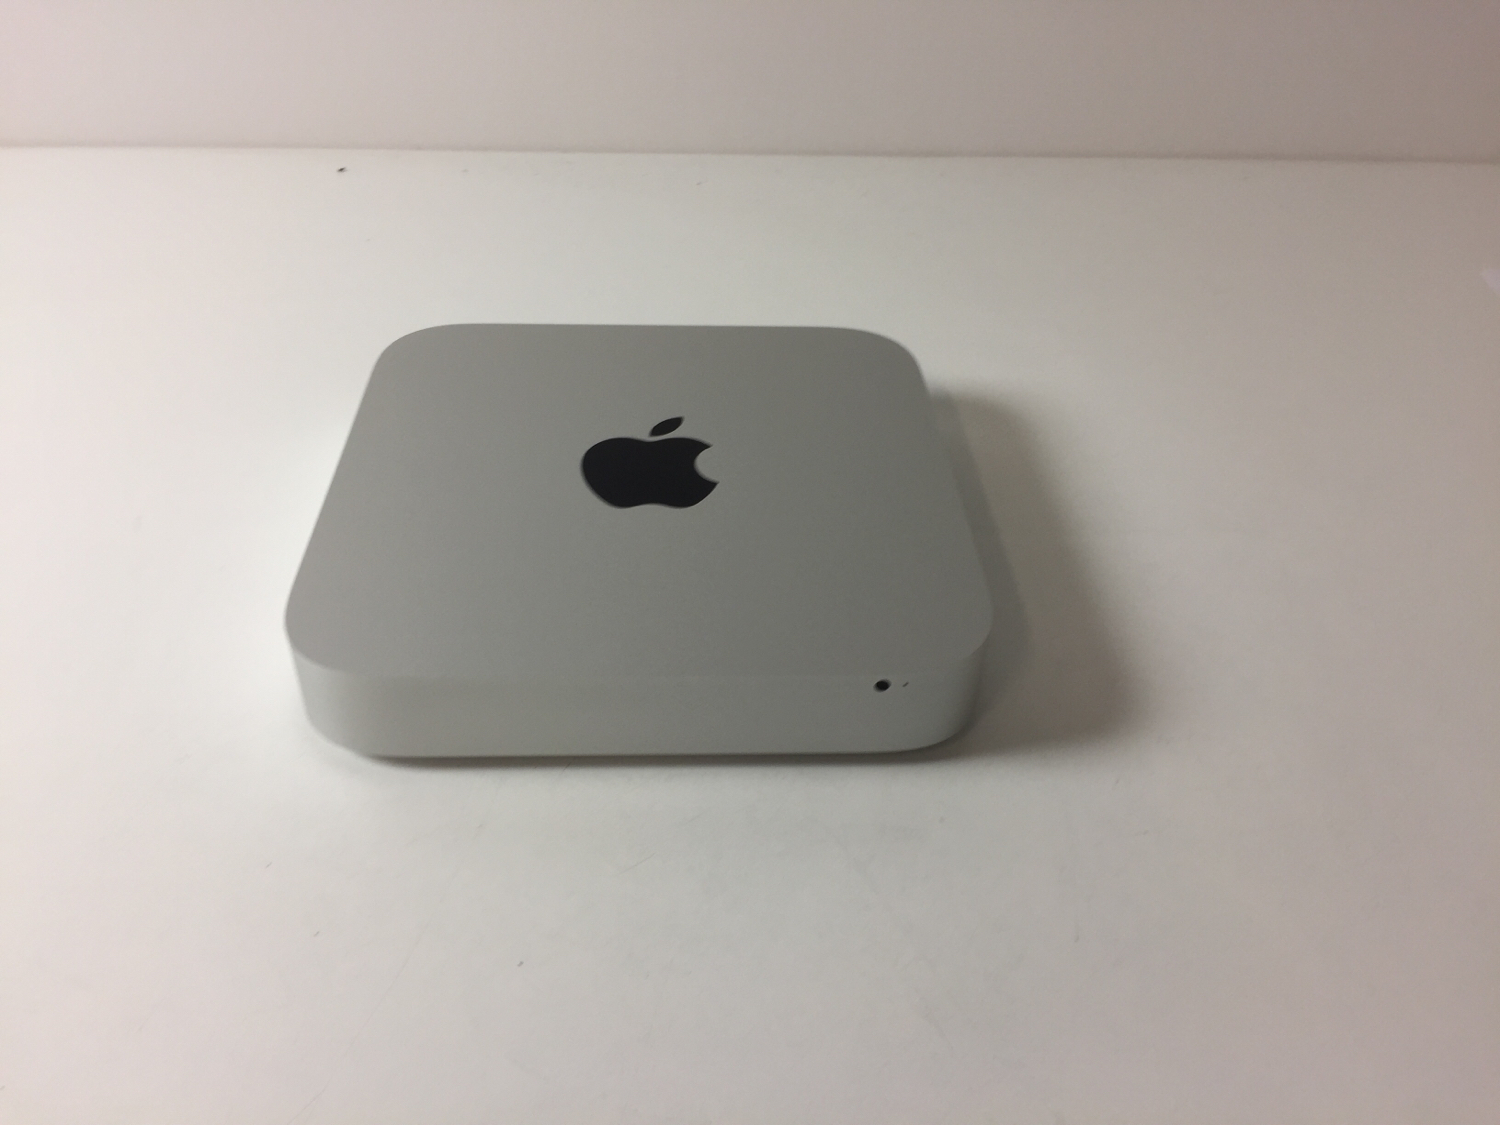 Mac Mini Late 2014 (Intel Core i5 2.6 GHz 8 GB RAM 1 TB HDD), Intel Core i5 2.6 GHz  (Turbo Boost 3.1 GHz) , 8GB  , 1 TB HDD, bild 1